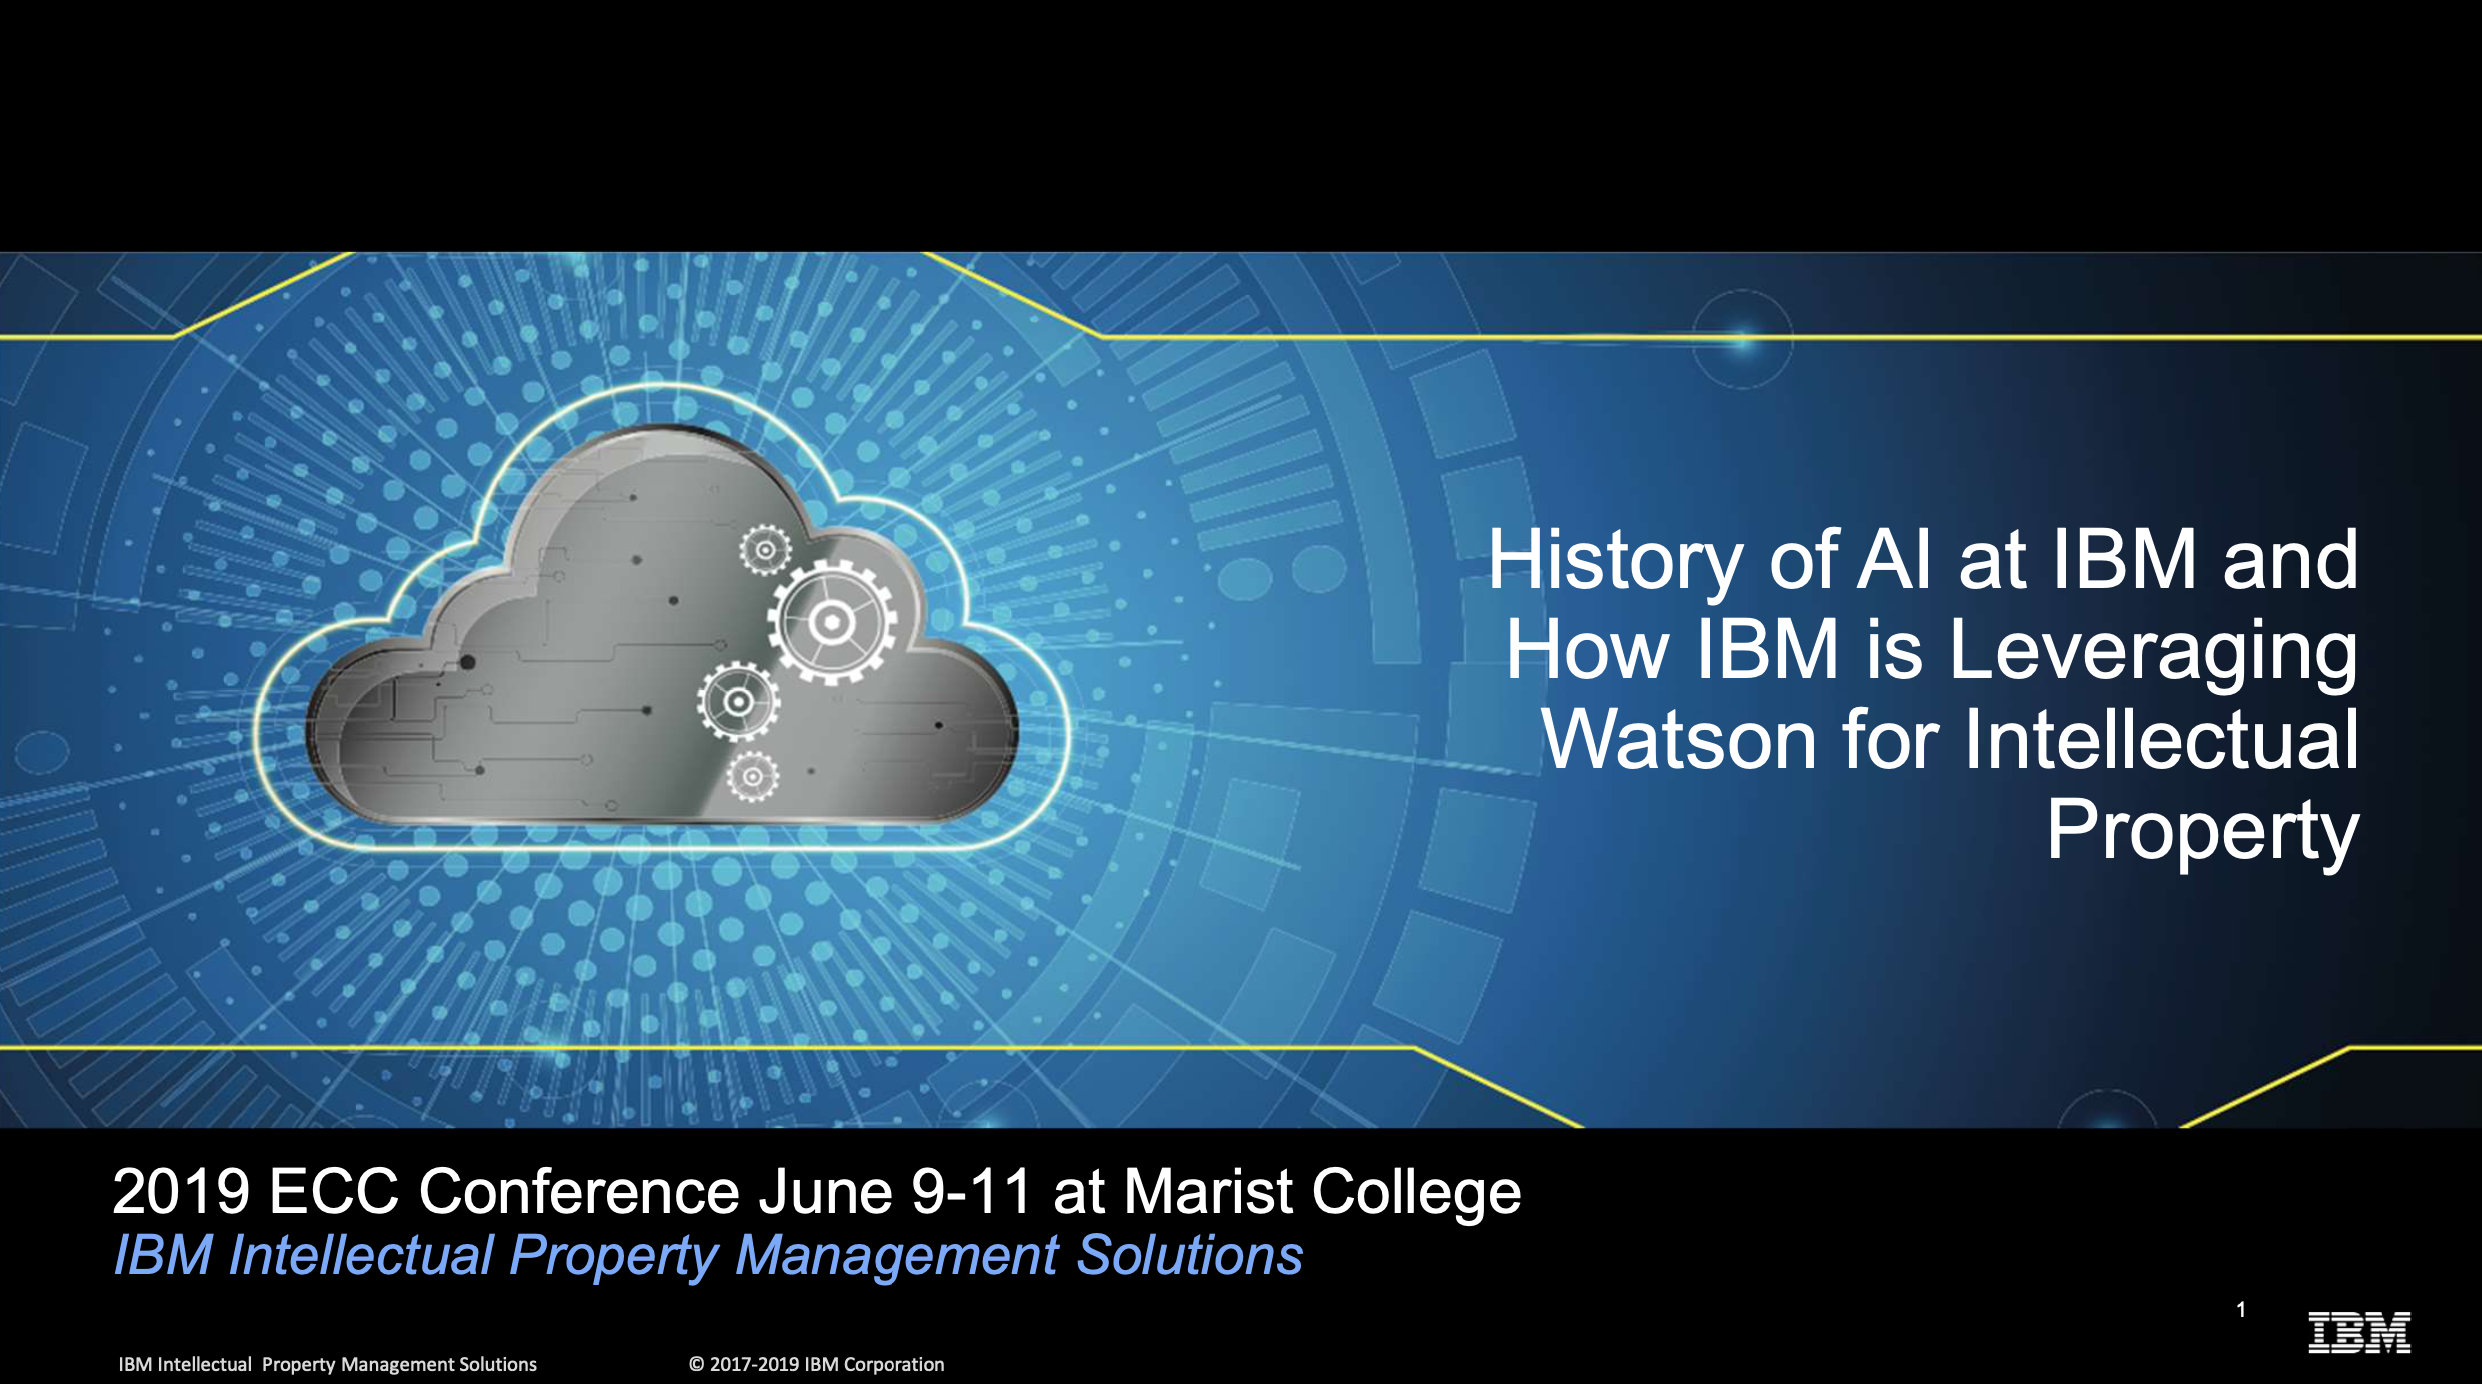 History of AI and How IBM is Leveraging Watson for Intellecutal Property